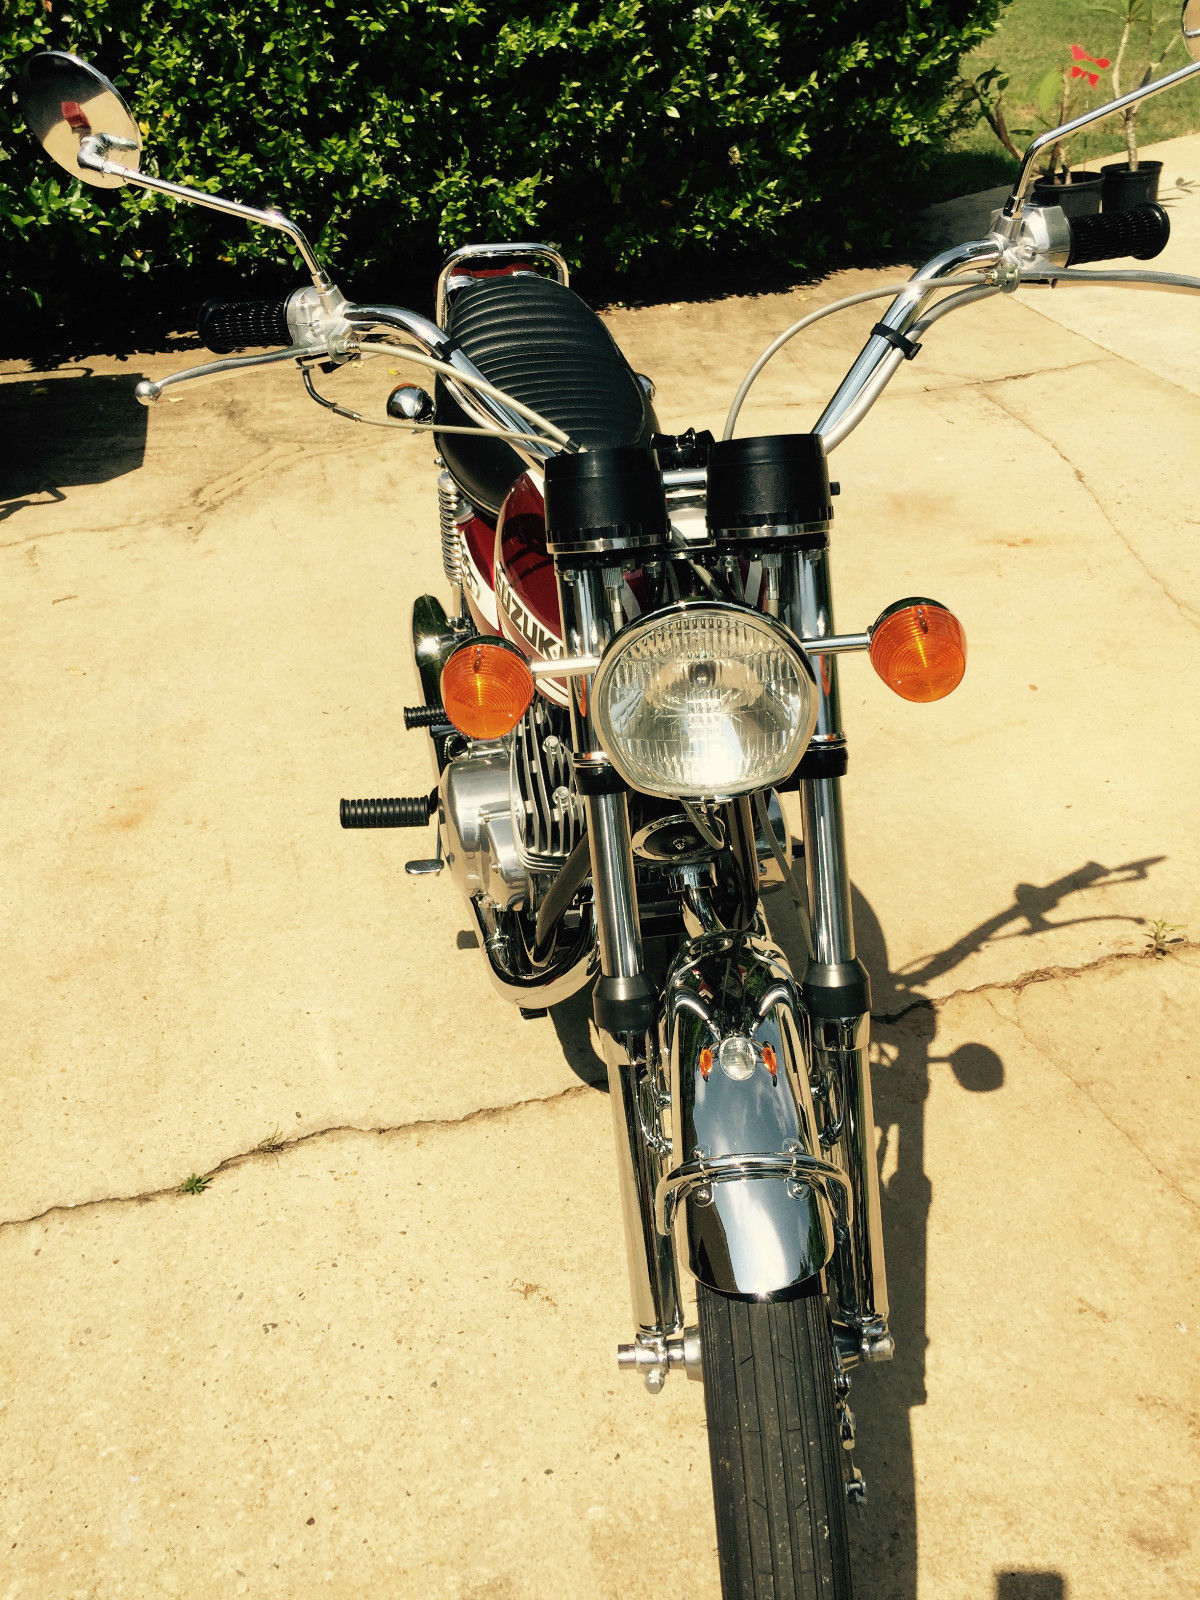 Suzuki T250 - 1972 - Front Fender, Forks, Wheel, Headlight, Grips and Levers.